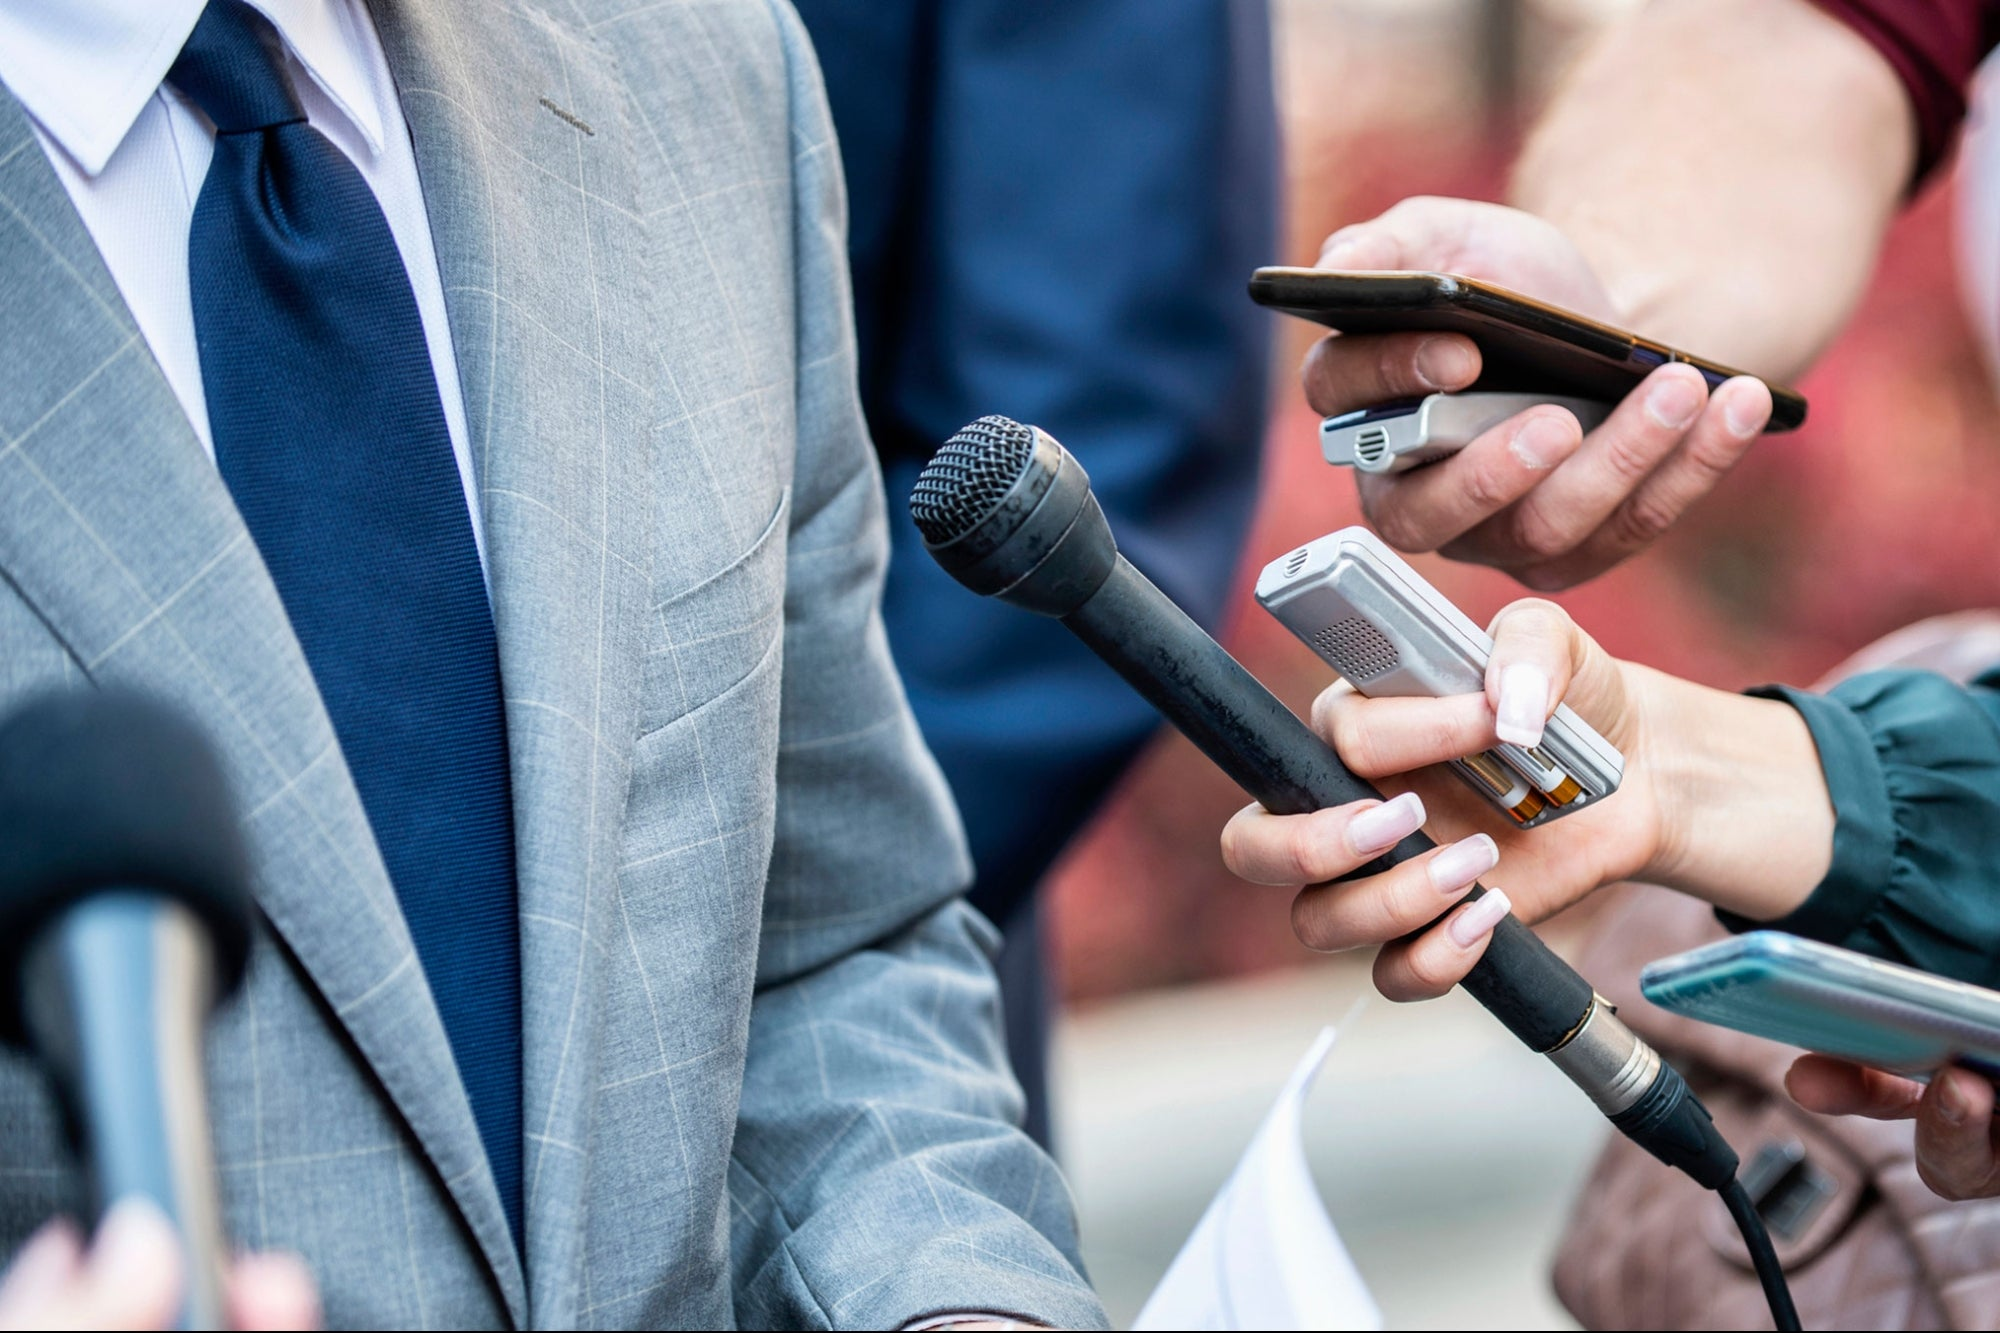 How to Get Your Business in the News (Without Bribing a Journalist)